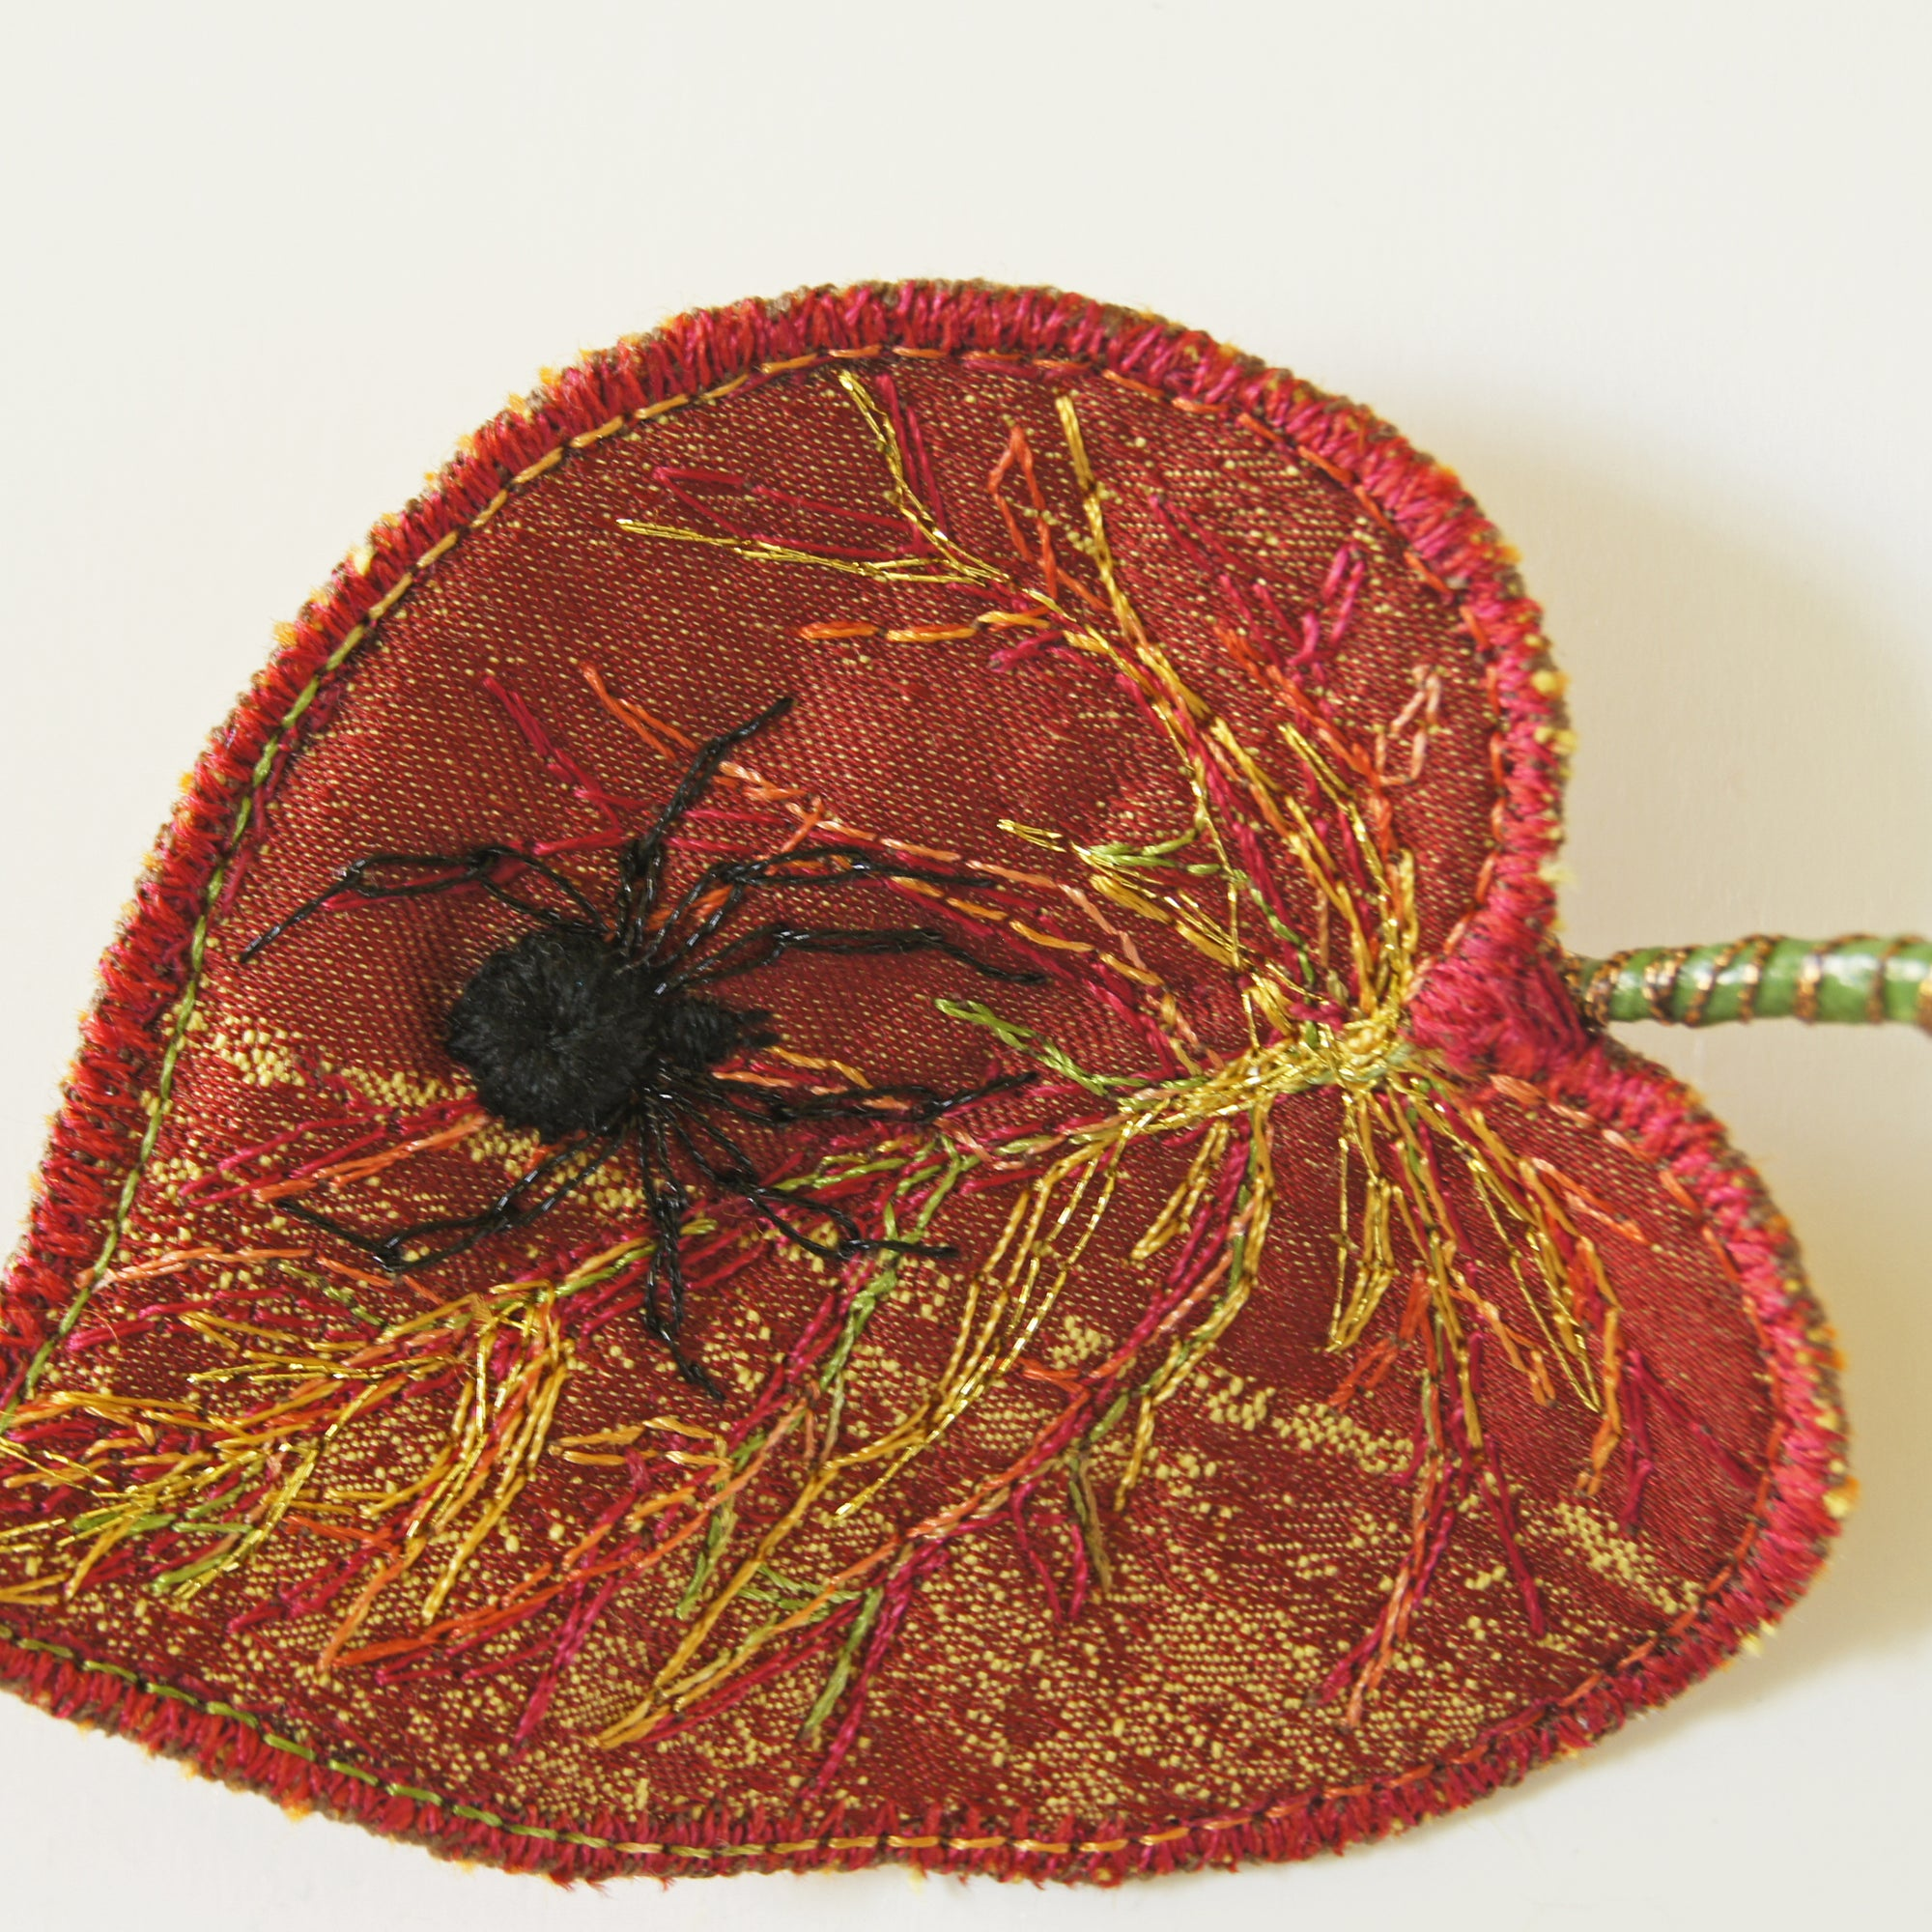 Textile Art Leaves with Embroidered Spider